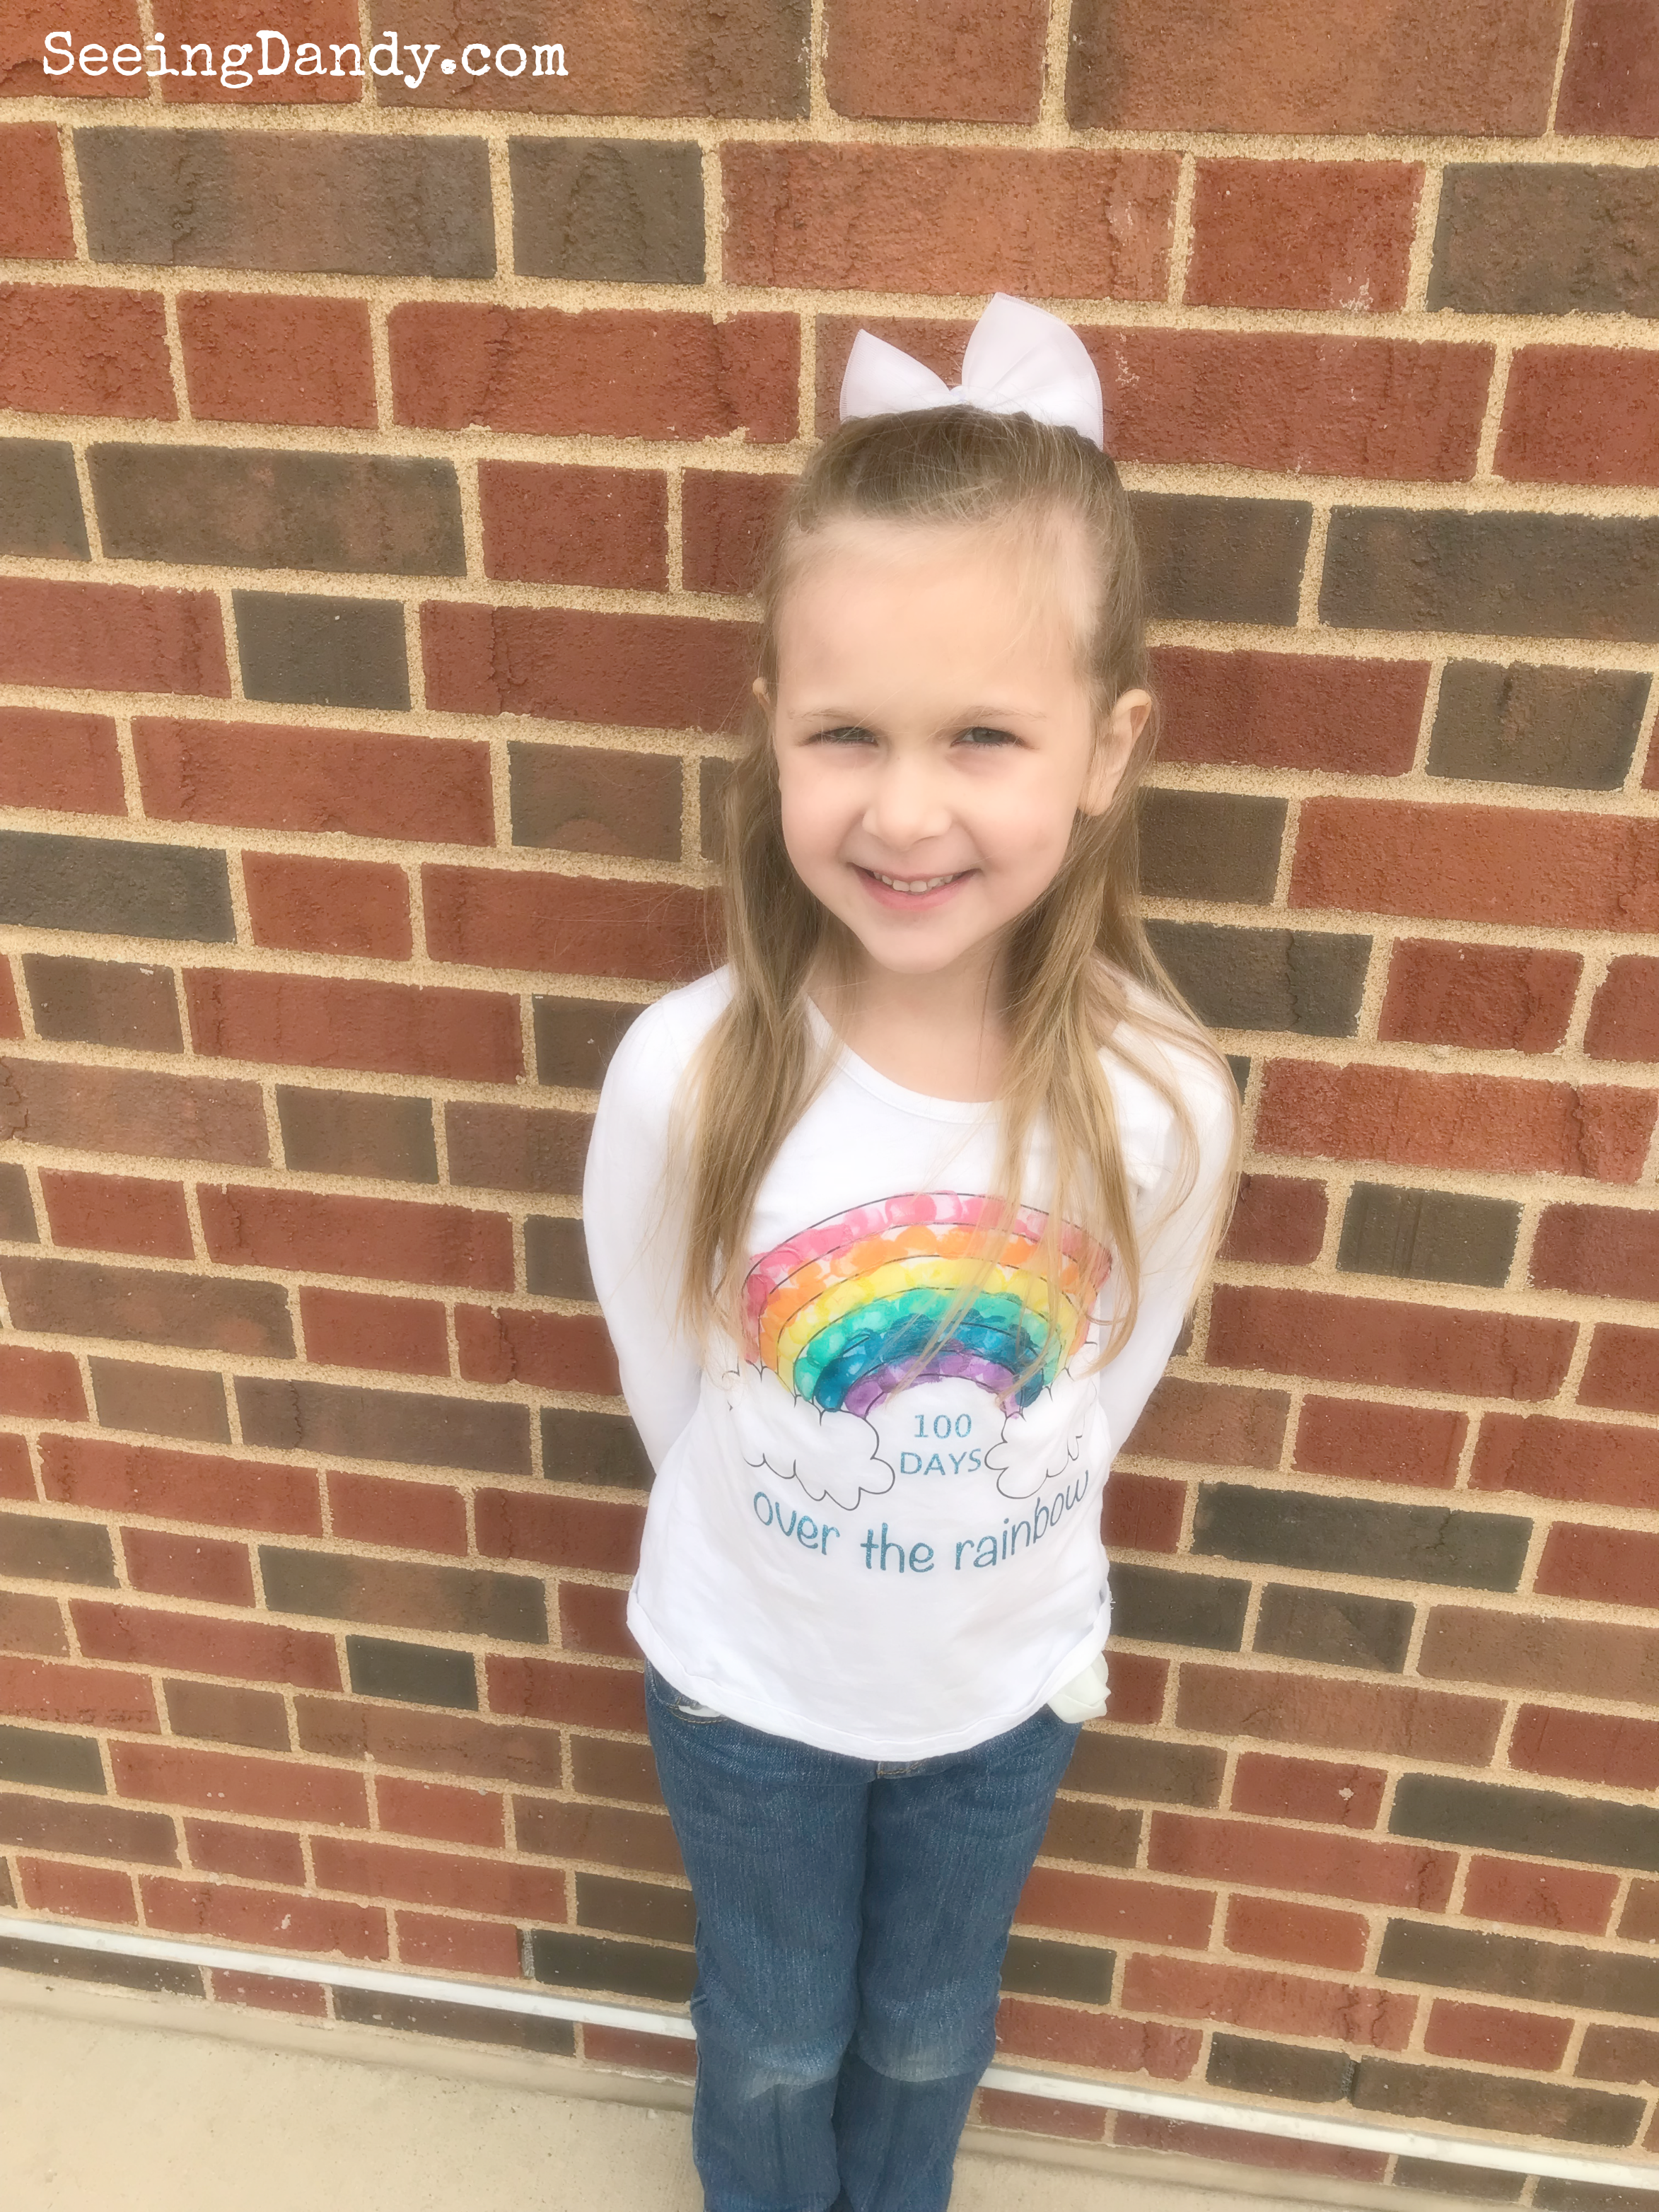 Easy to make 100th Day of School rainbow shirt to celebrate 100 days of school.